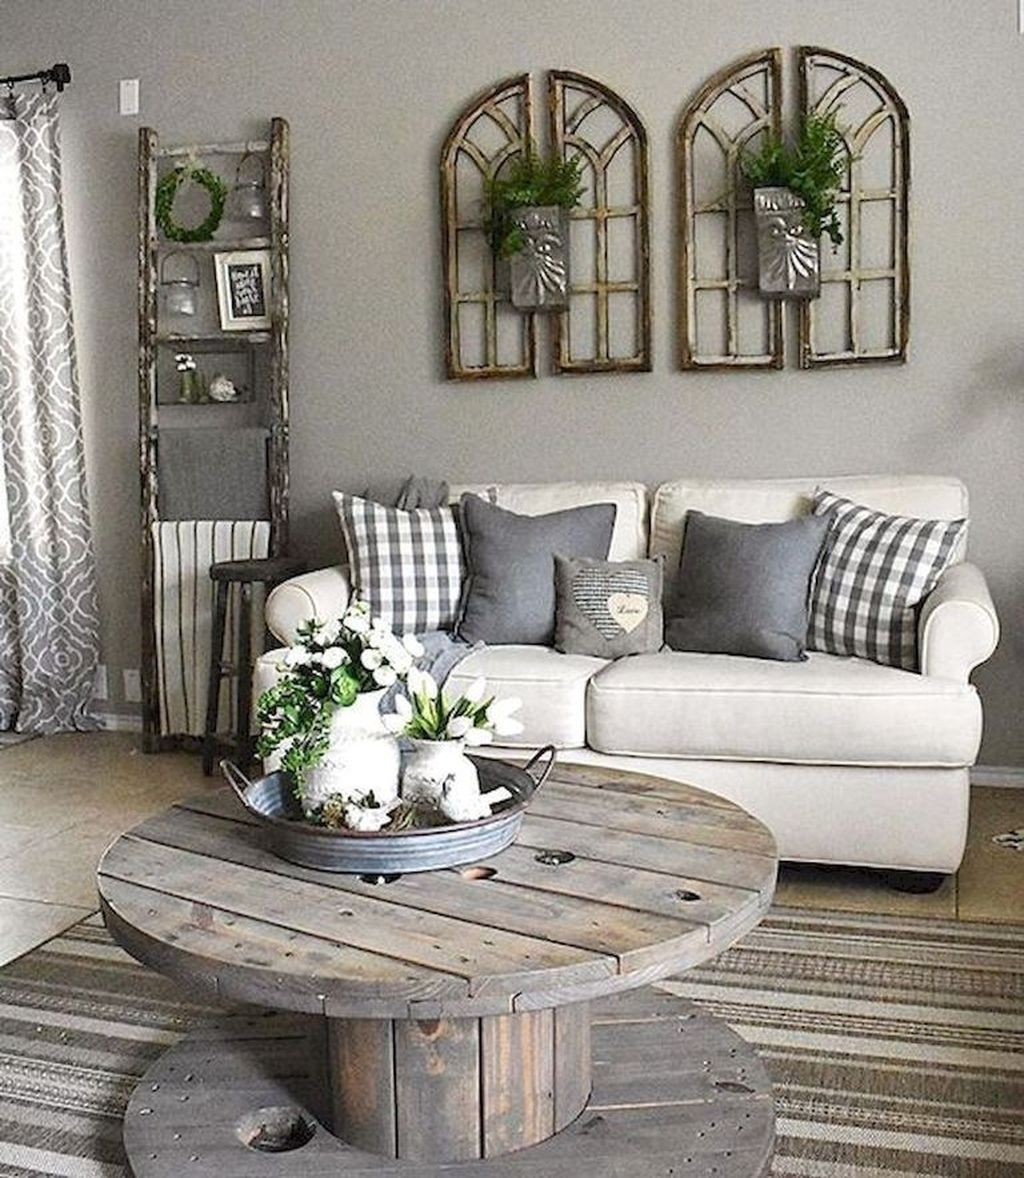 33 Fantastic Farmhouse Living Room Design And Decoration Ideas To Try Asap Farm House Living Room Farmhouse Decor Living Room Living Room Decor Rustic Living room decoration ideas